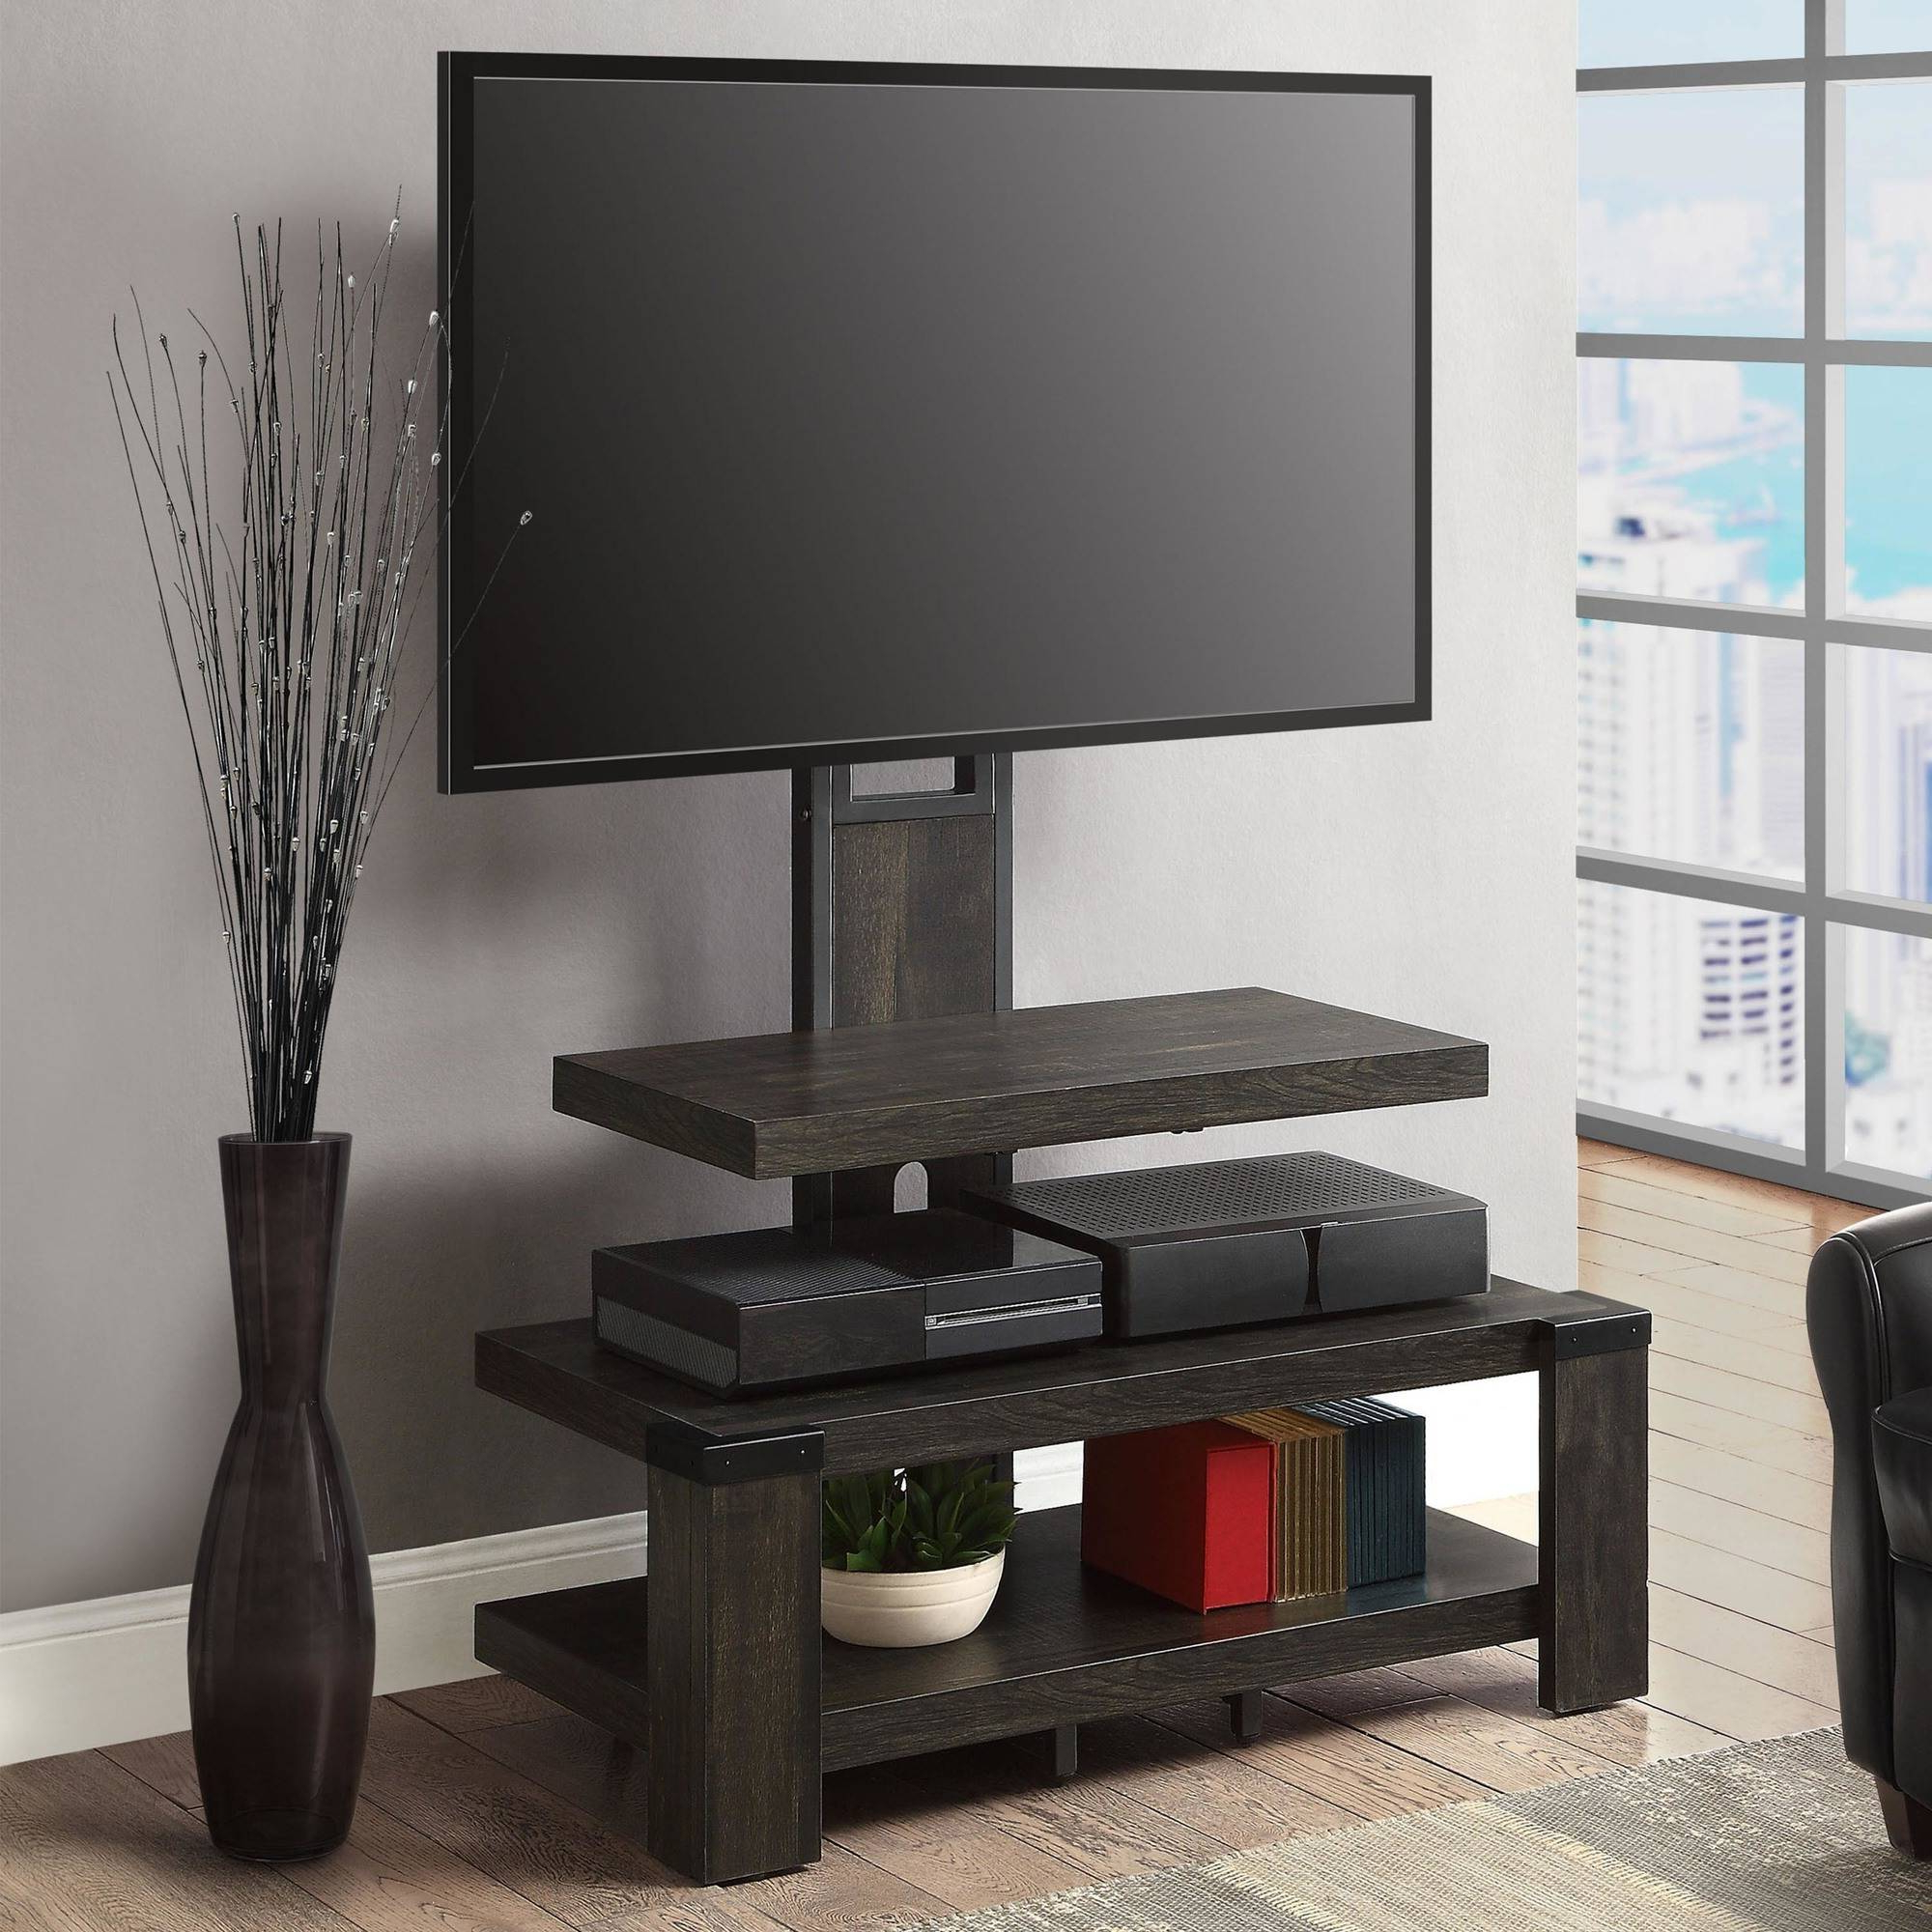 Most Popular Tv Stands With Mount In Wood Tv Stand With Mount Durable 3 Shelf Home Tv Entertainment Media (View 5 of 20)